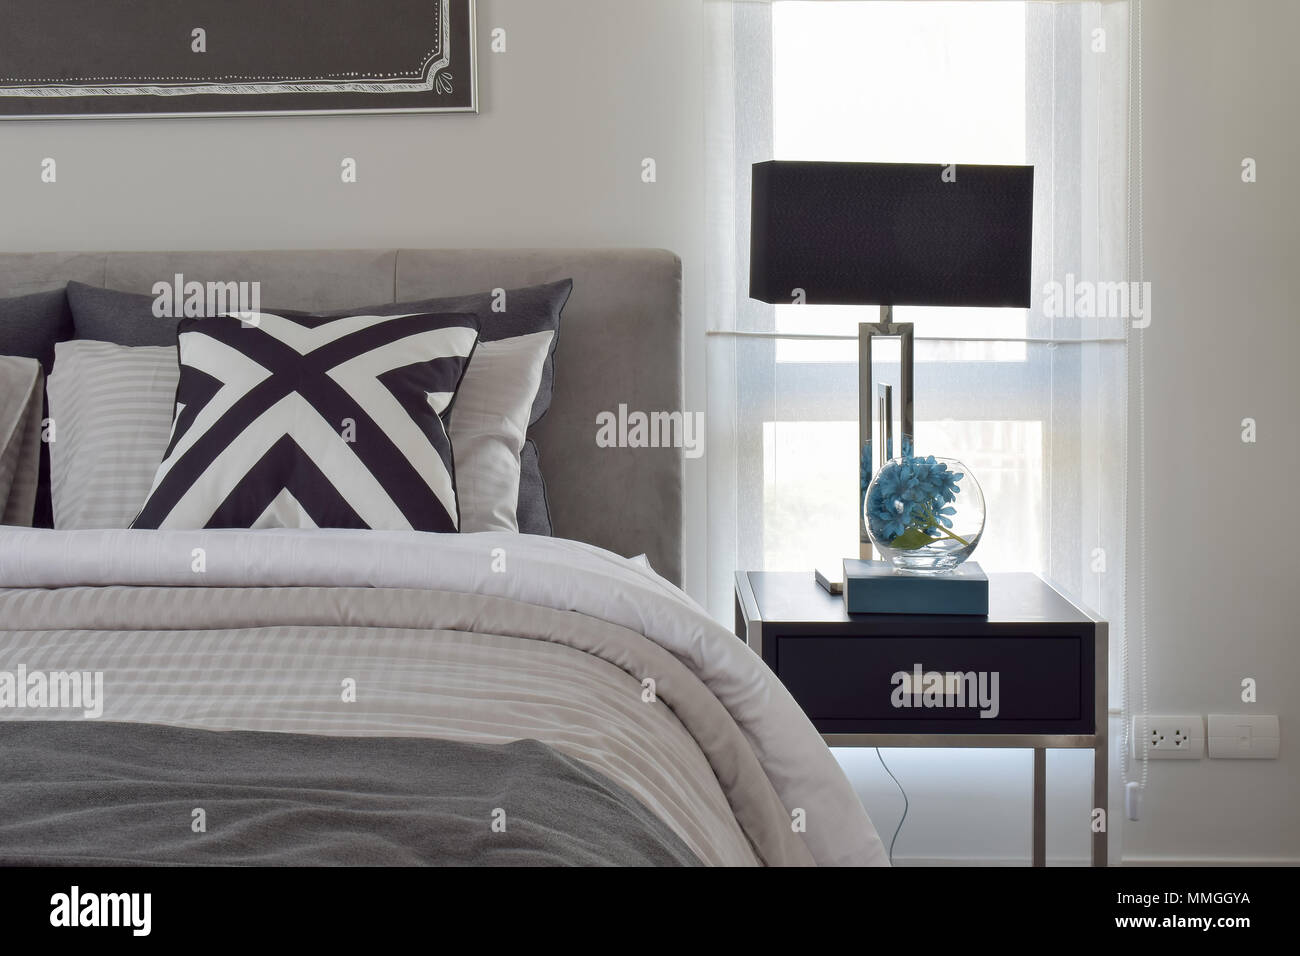 Black Shade Reading Lamp On Bedside Table With Modern Classic Style Bedding Stock Photo Alamy